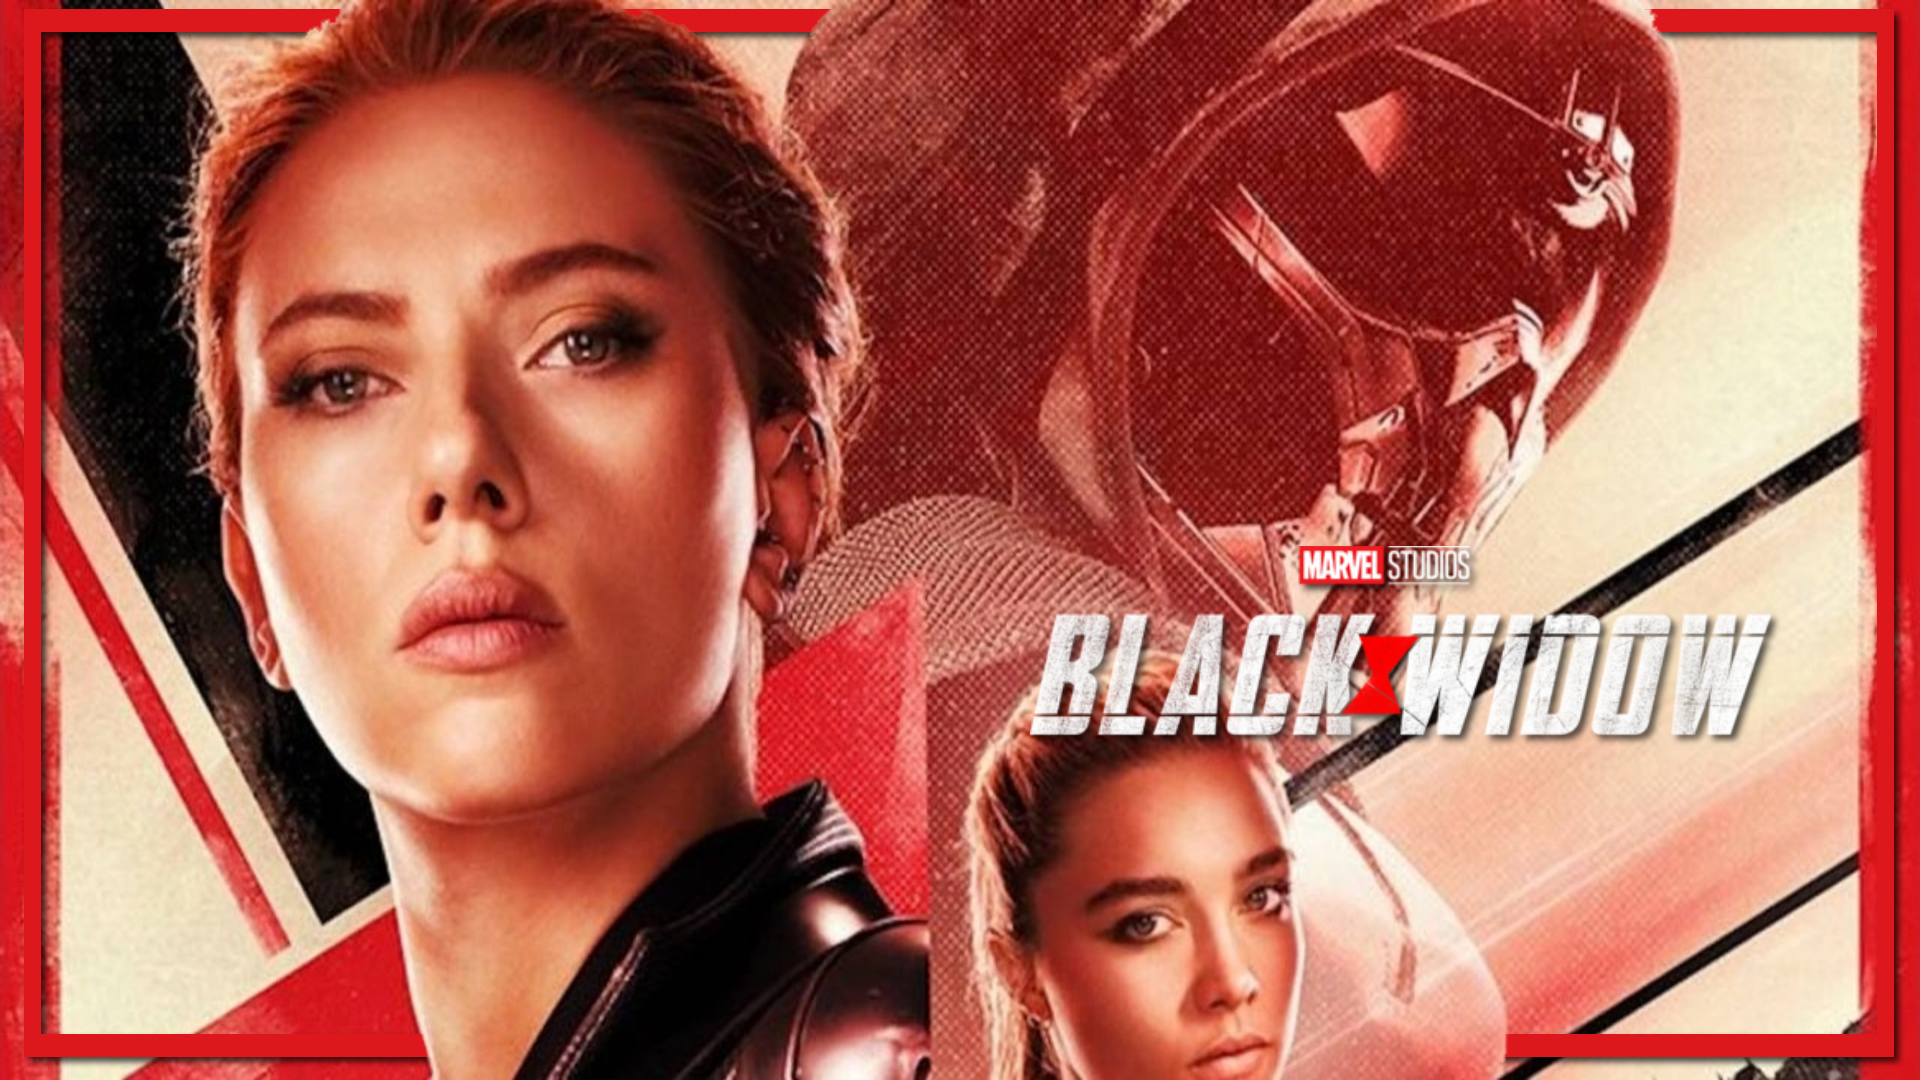 New Posters For Marvel's Black Widow Released!